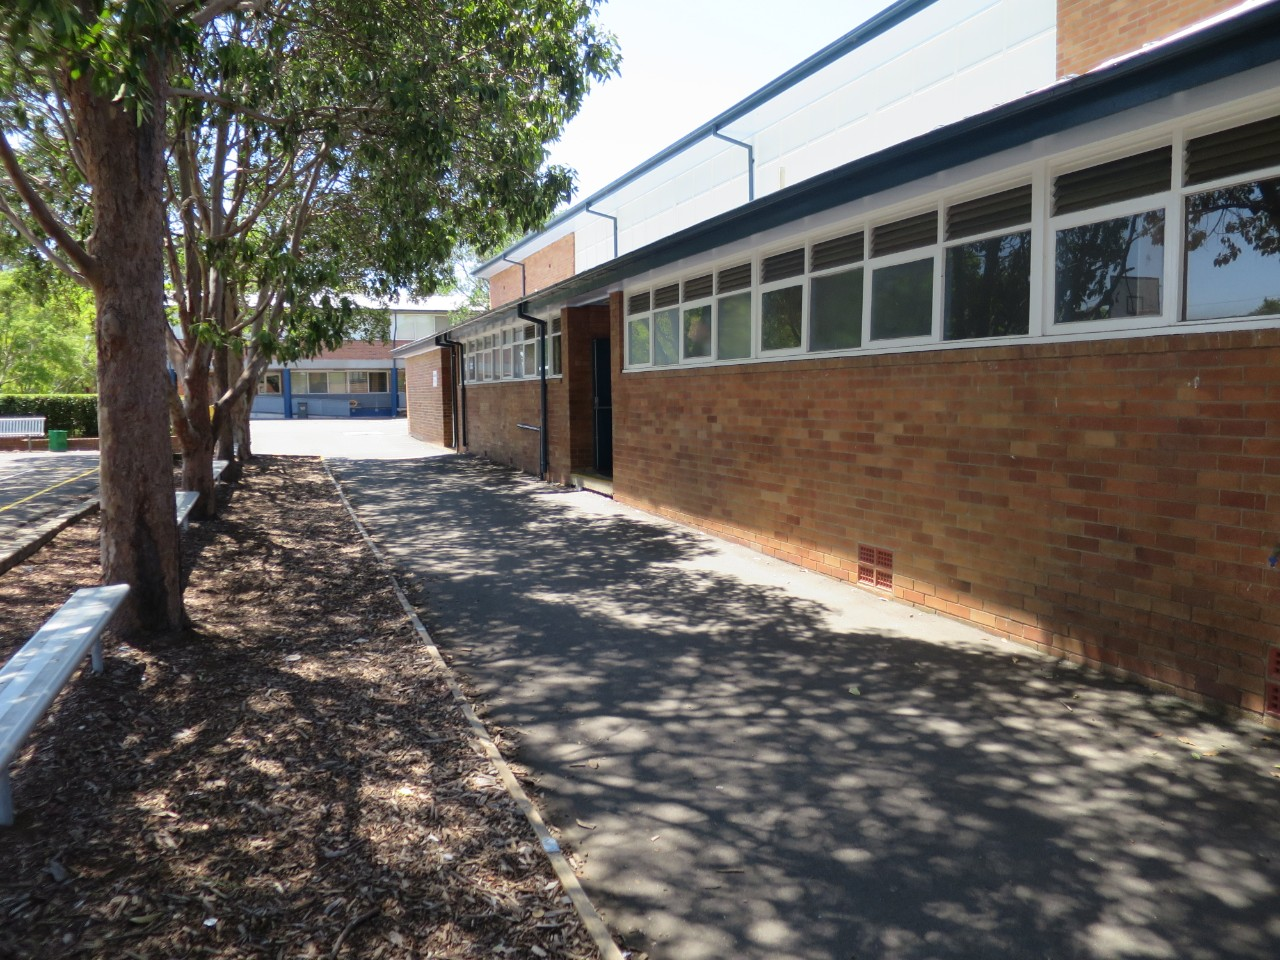 School grounds showing B block near the main entry to the school.